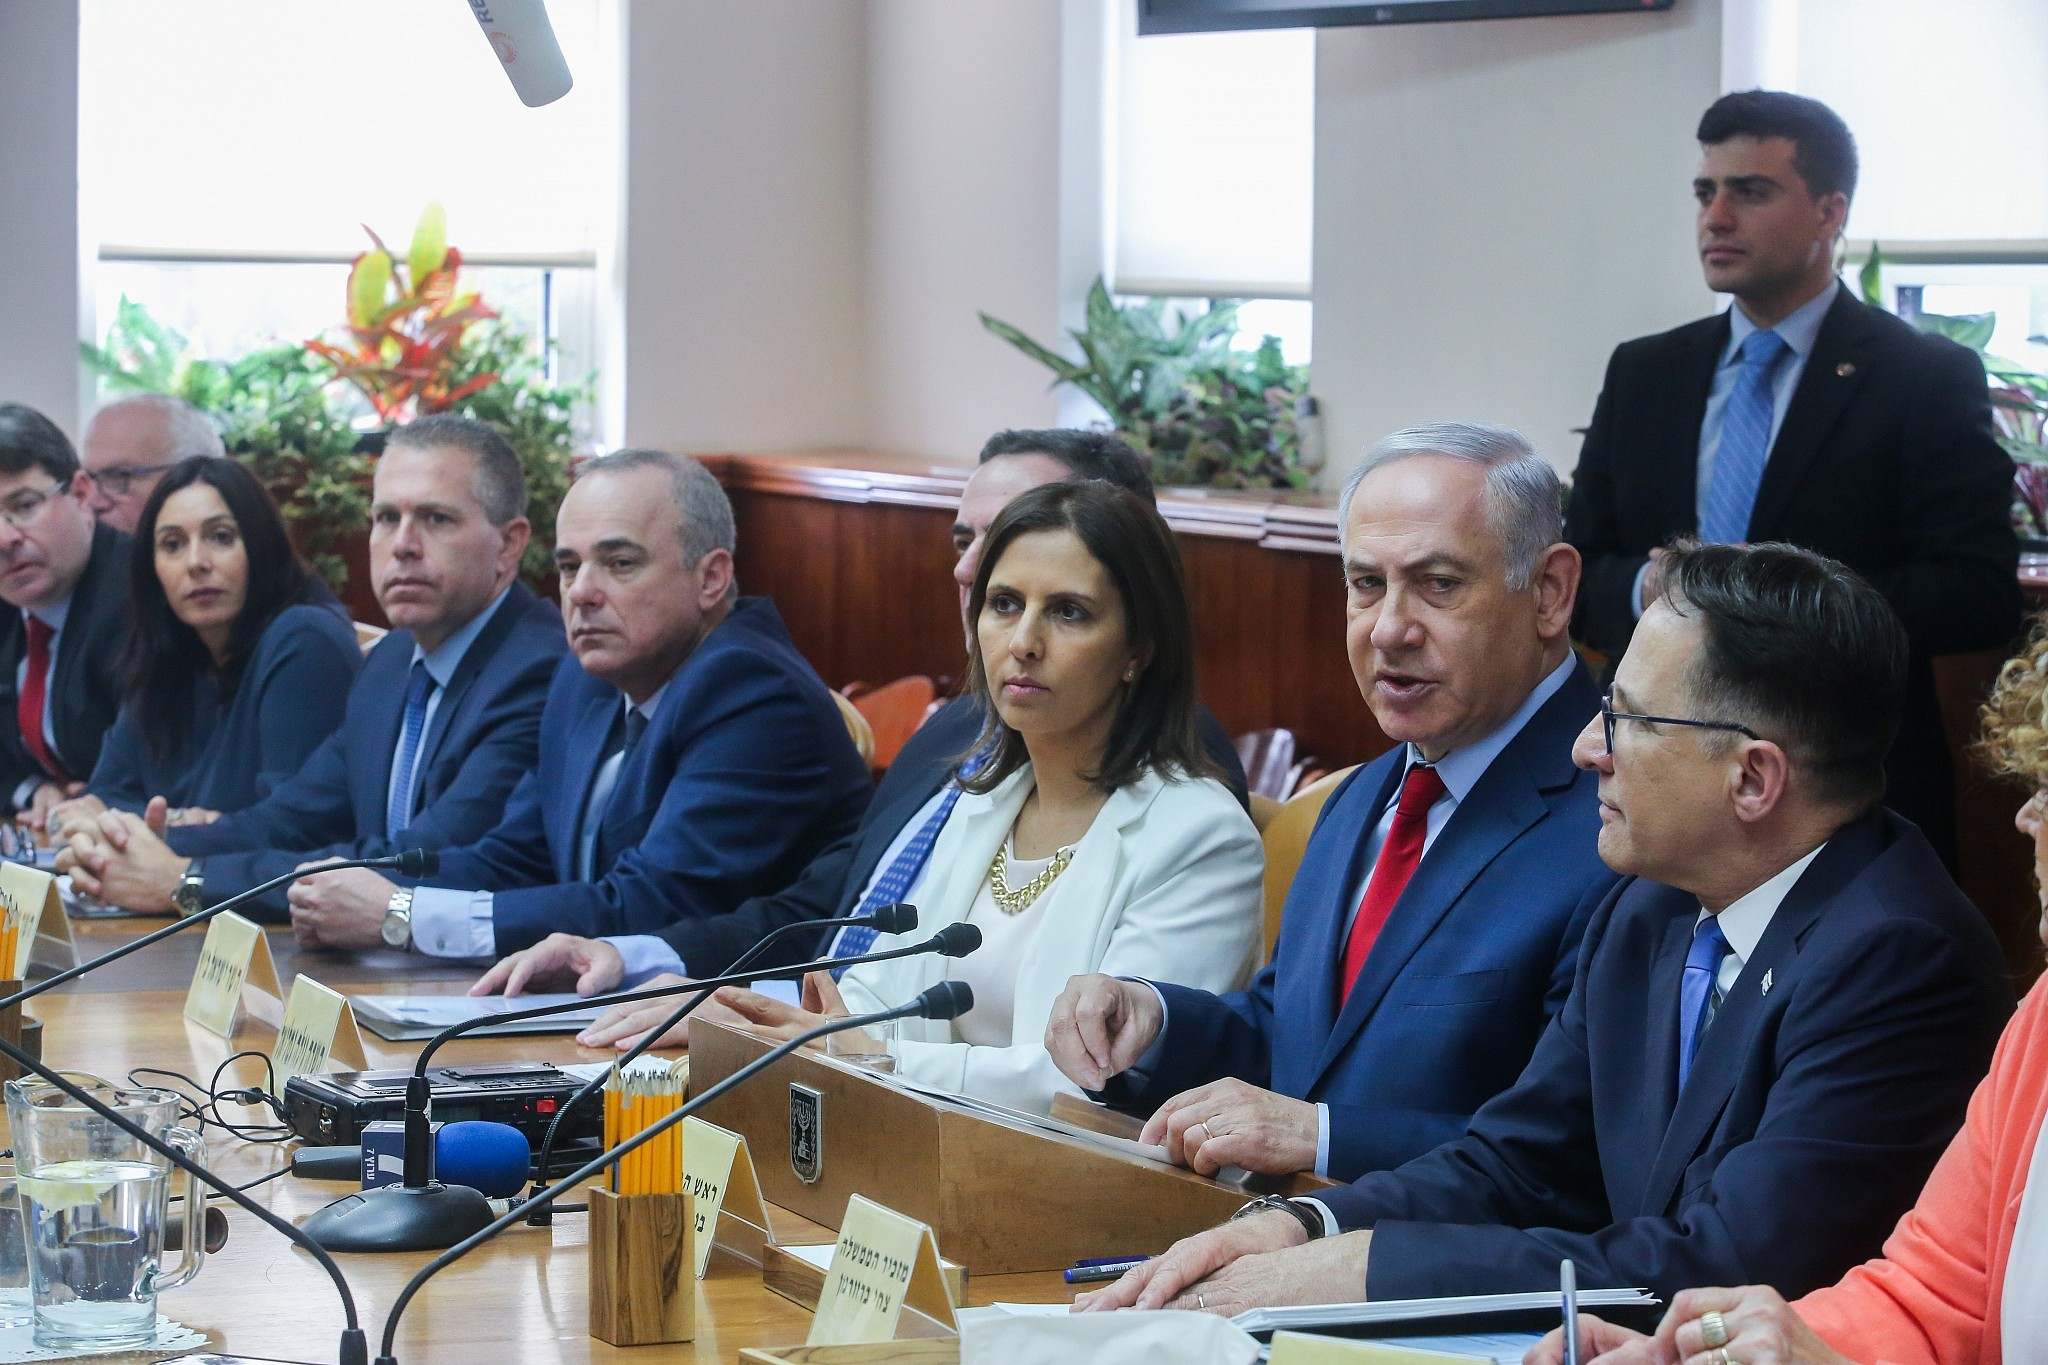 Israel FM's party to bolt coalition if PM indicted